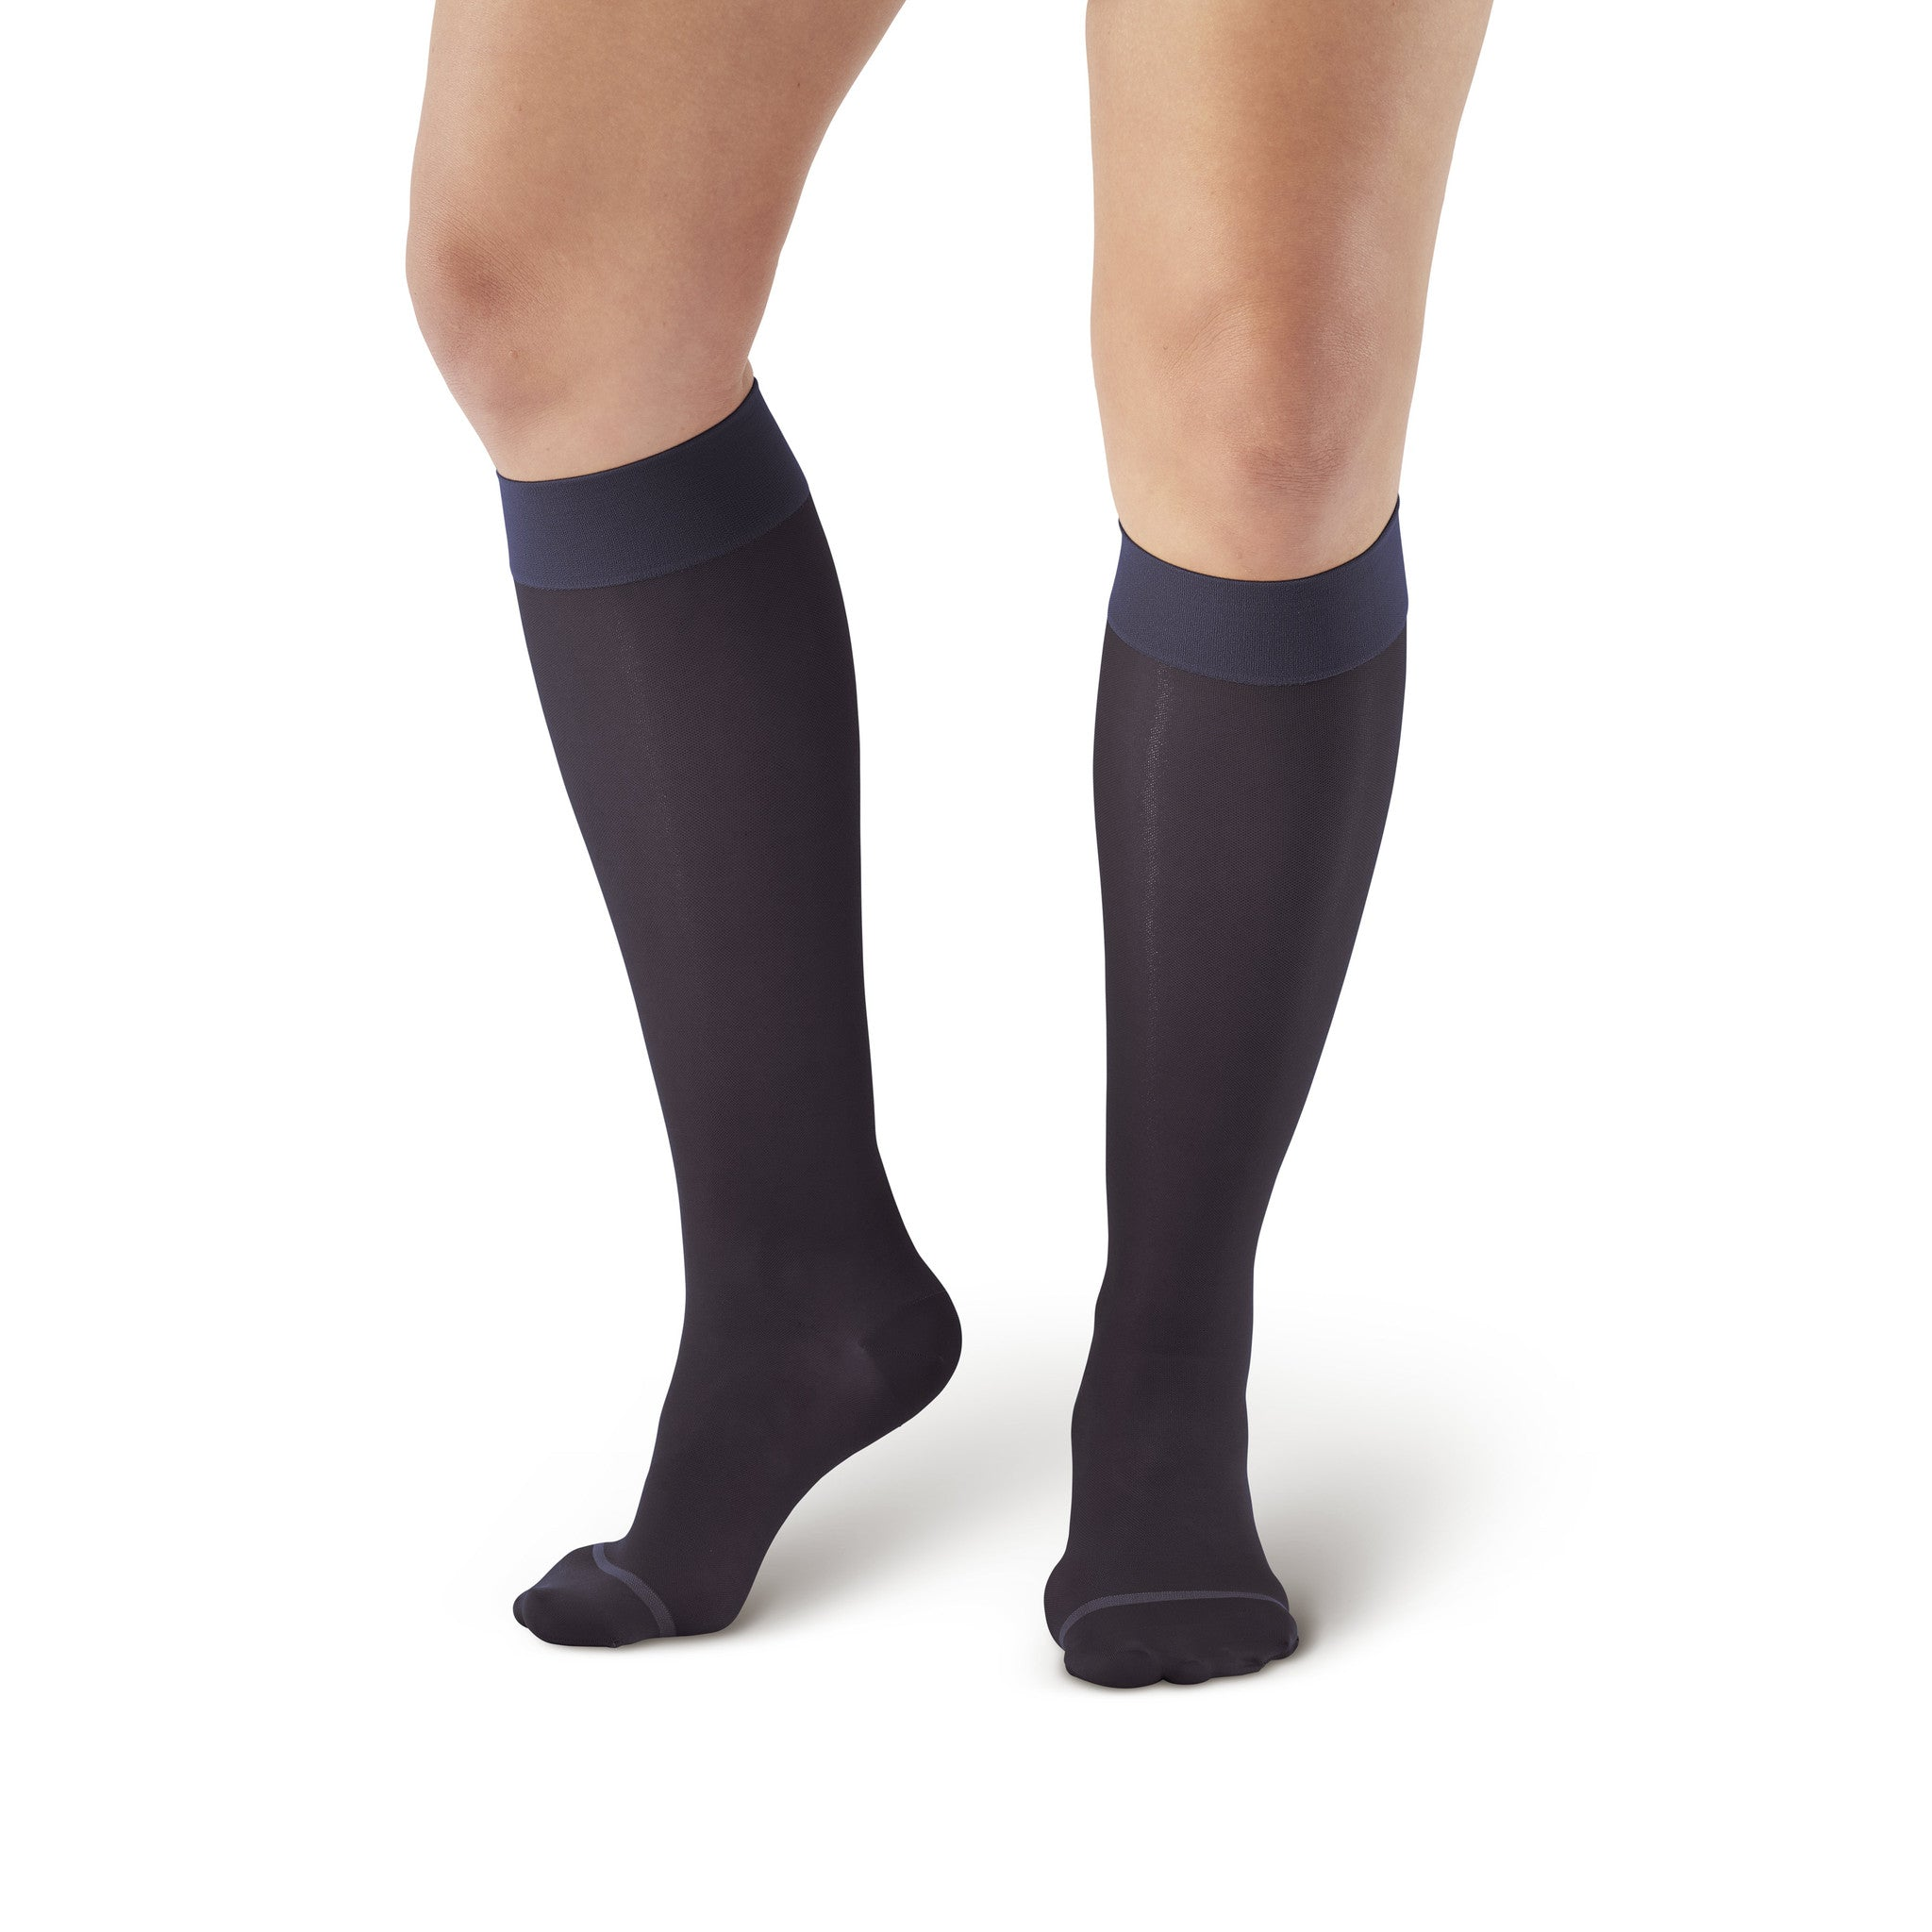 2ed6f16cac8 ... AW Style 16 Sheer Support Closed Toe Knee Highs - 15-20 mmHg - Navy ...